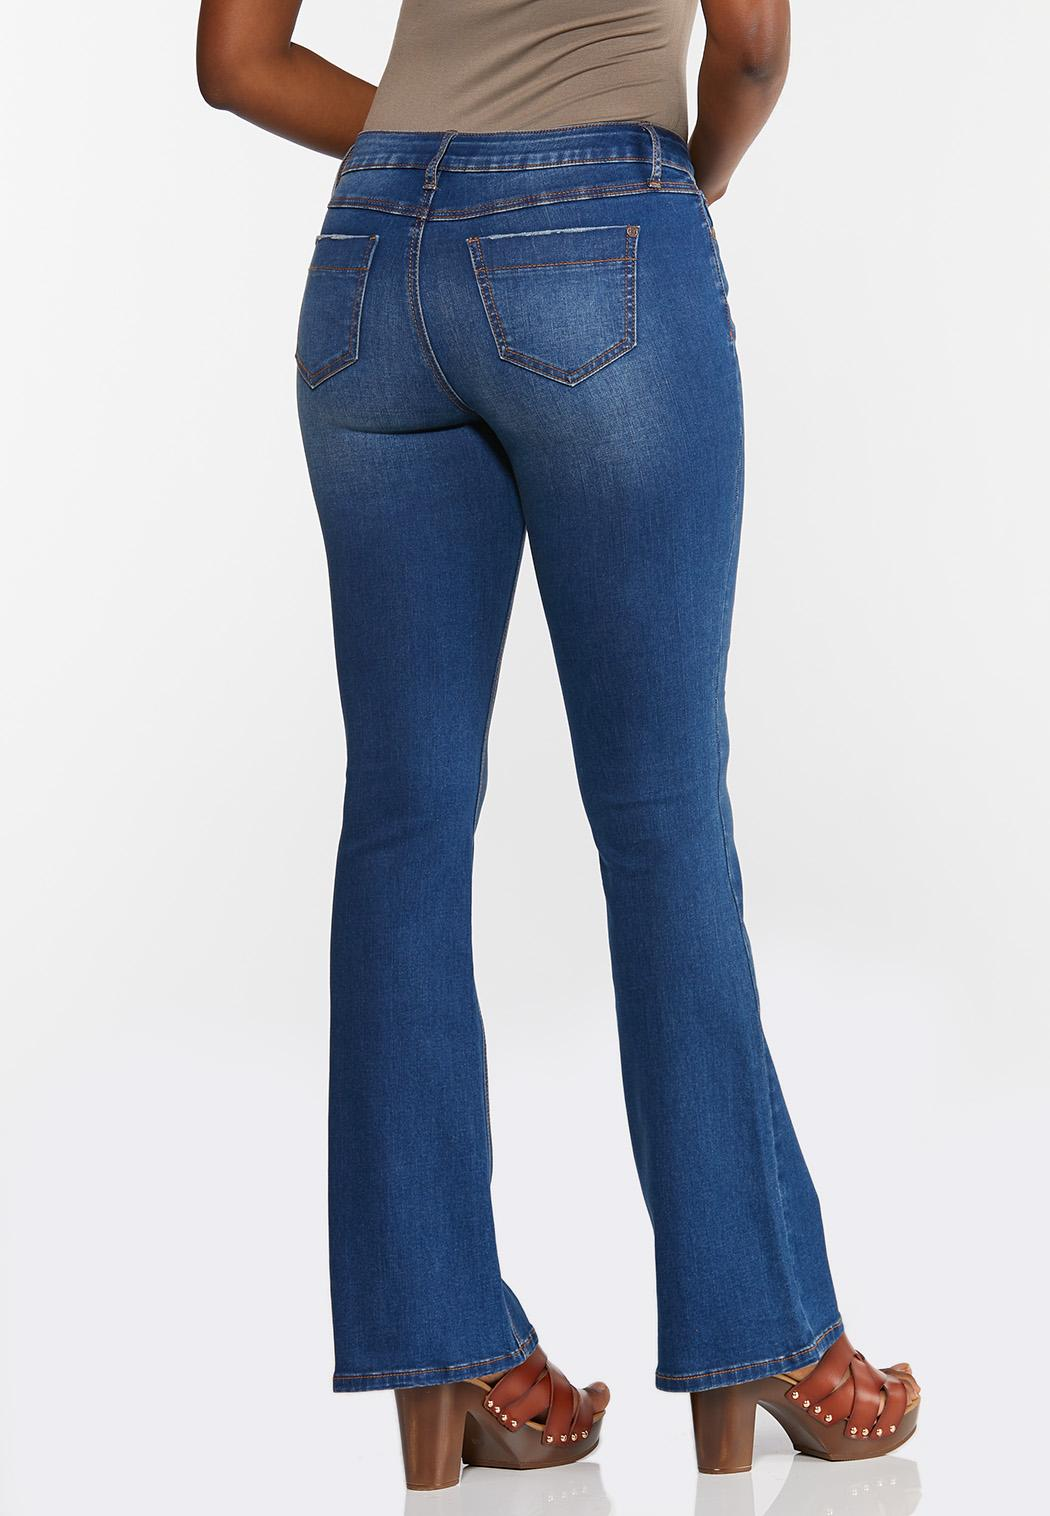 Flare Mid-Rise Jeans (Item #44350214)